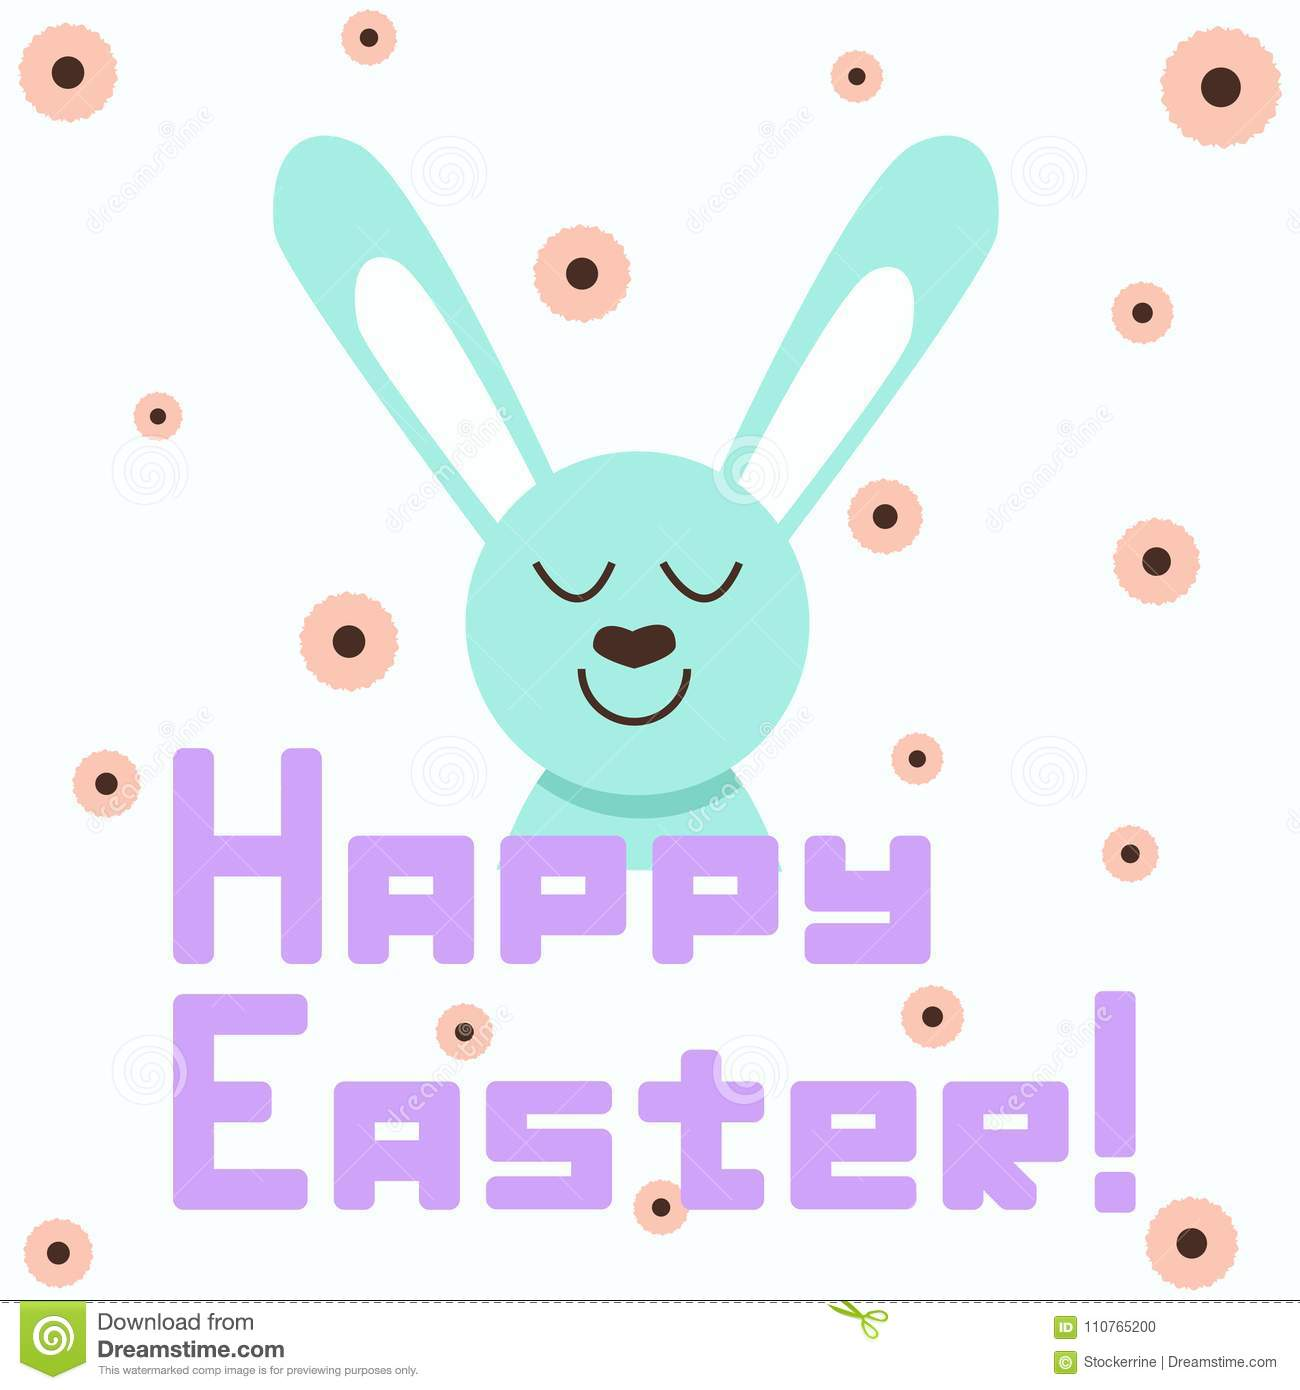 Happy easter greetings can be used for greeting and invitation happy easter greetings can be used for greeting and invitation cards mugs posters m4hsunfo